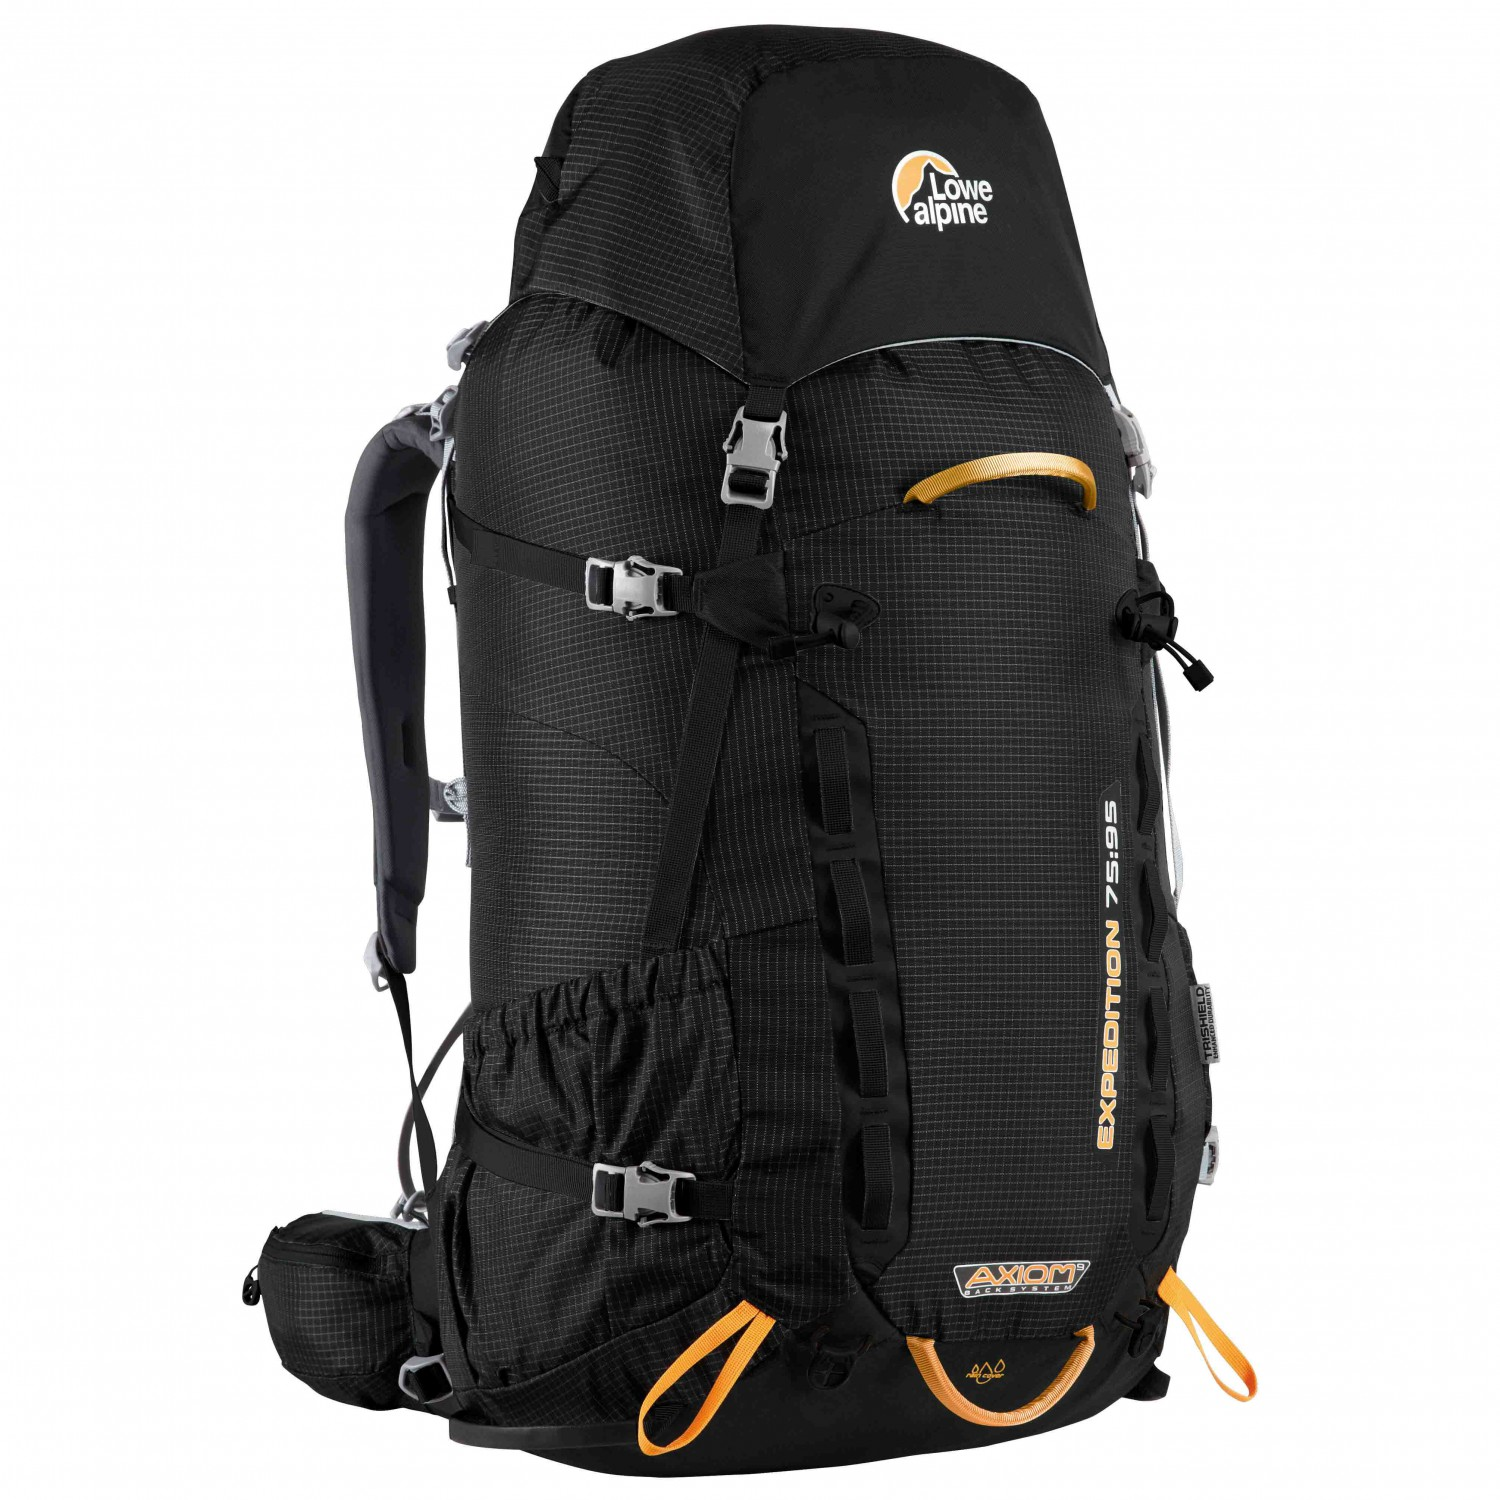 7981bd5045 Lowe Alpine Axiom Expedition 75-95 - Walking Backpack | Free UK ...